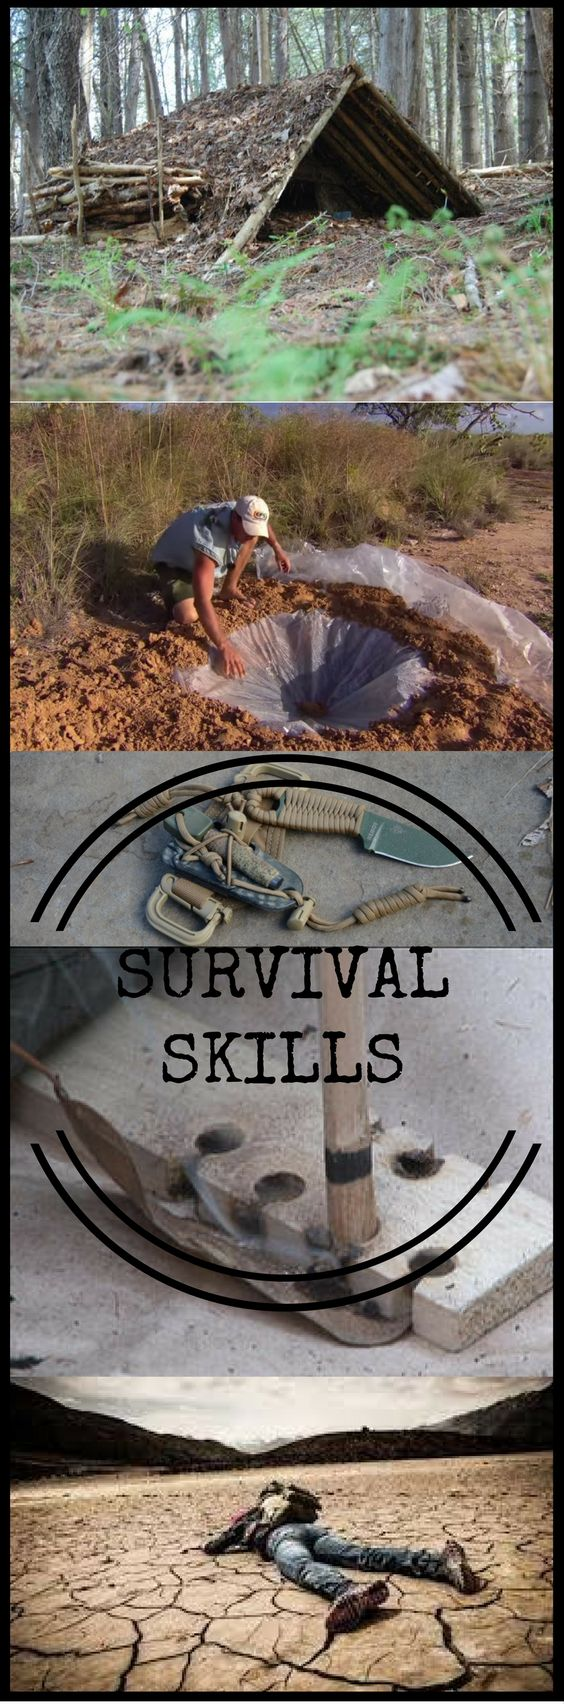 Survival Tips and Techniques: vid.staged.com/88us Read at: timdiy.com